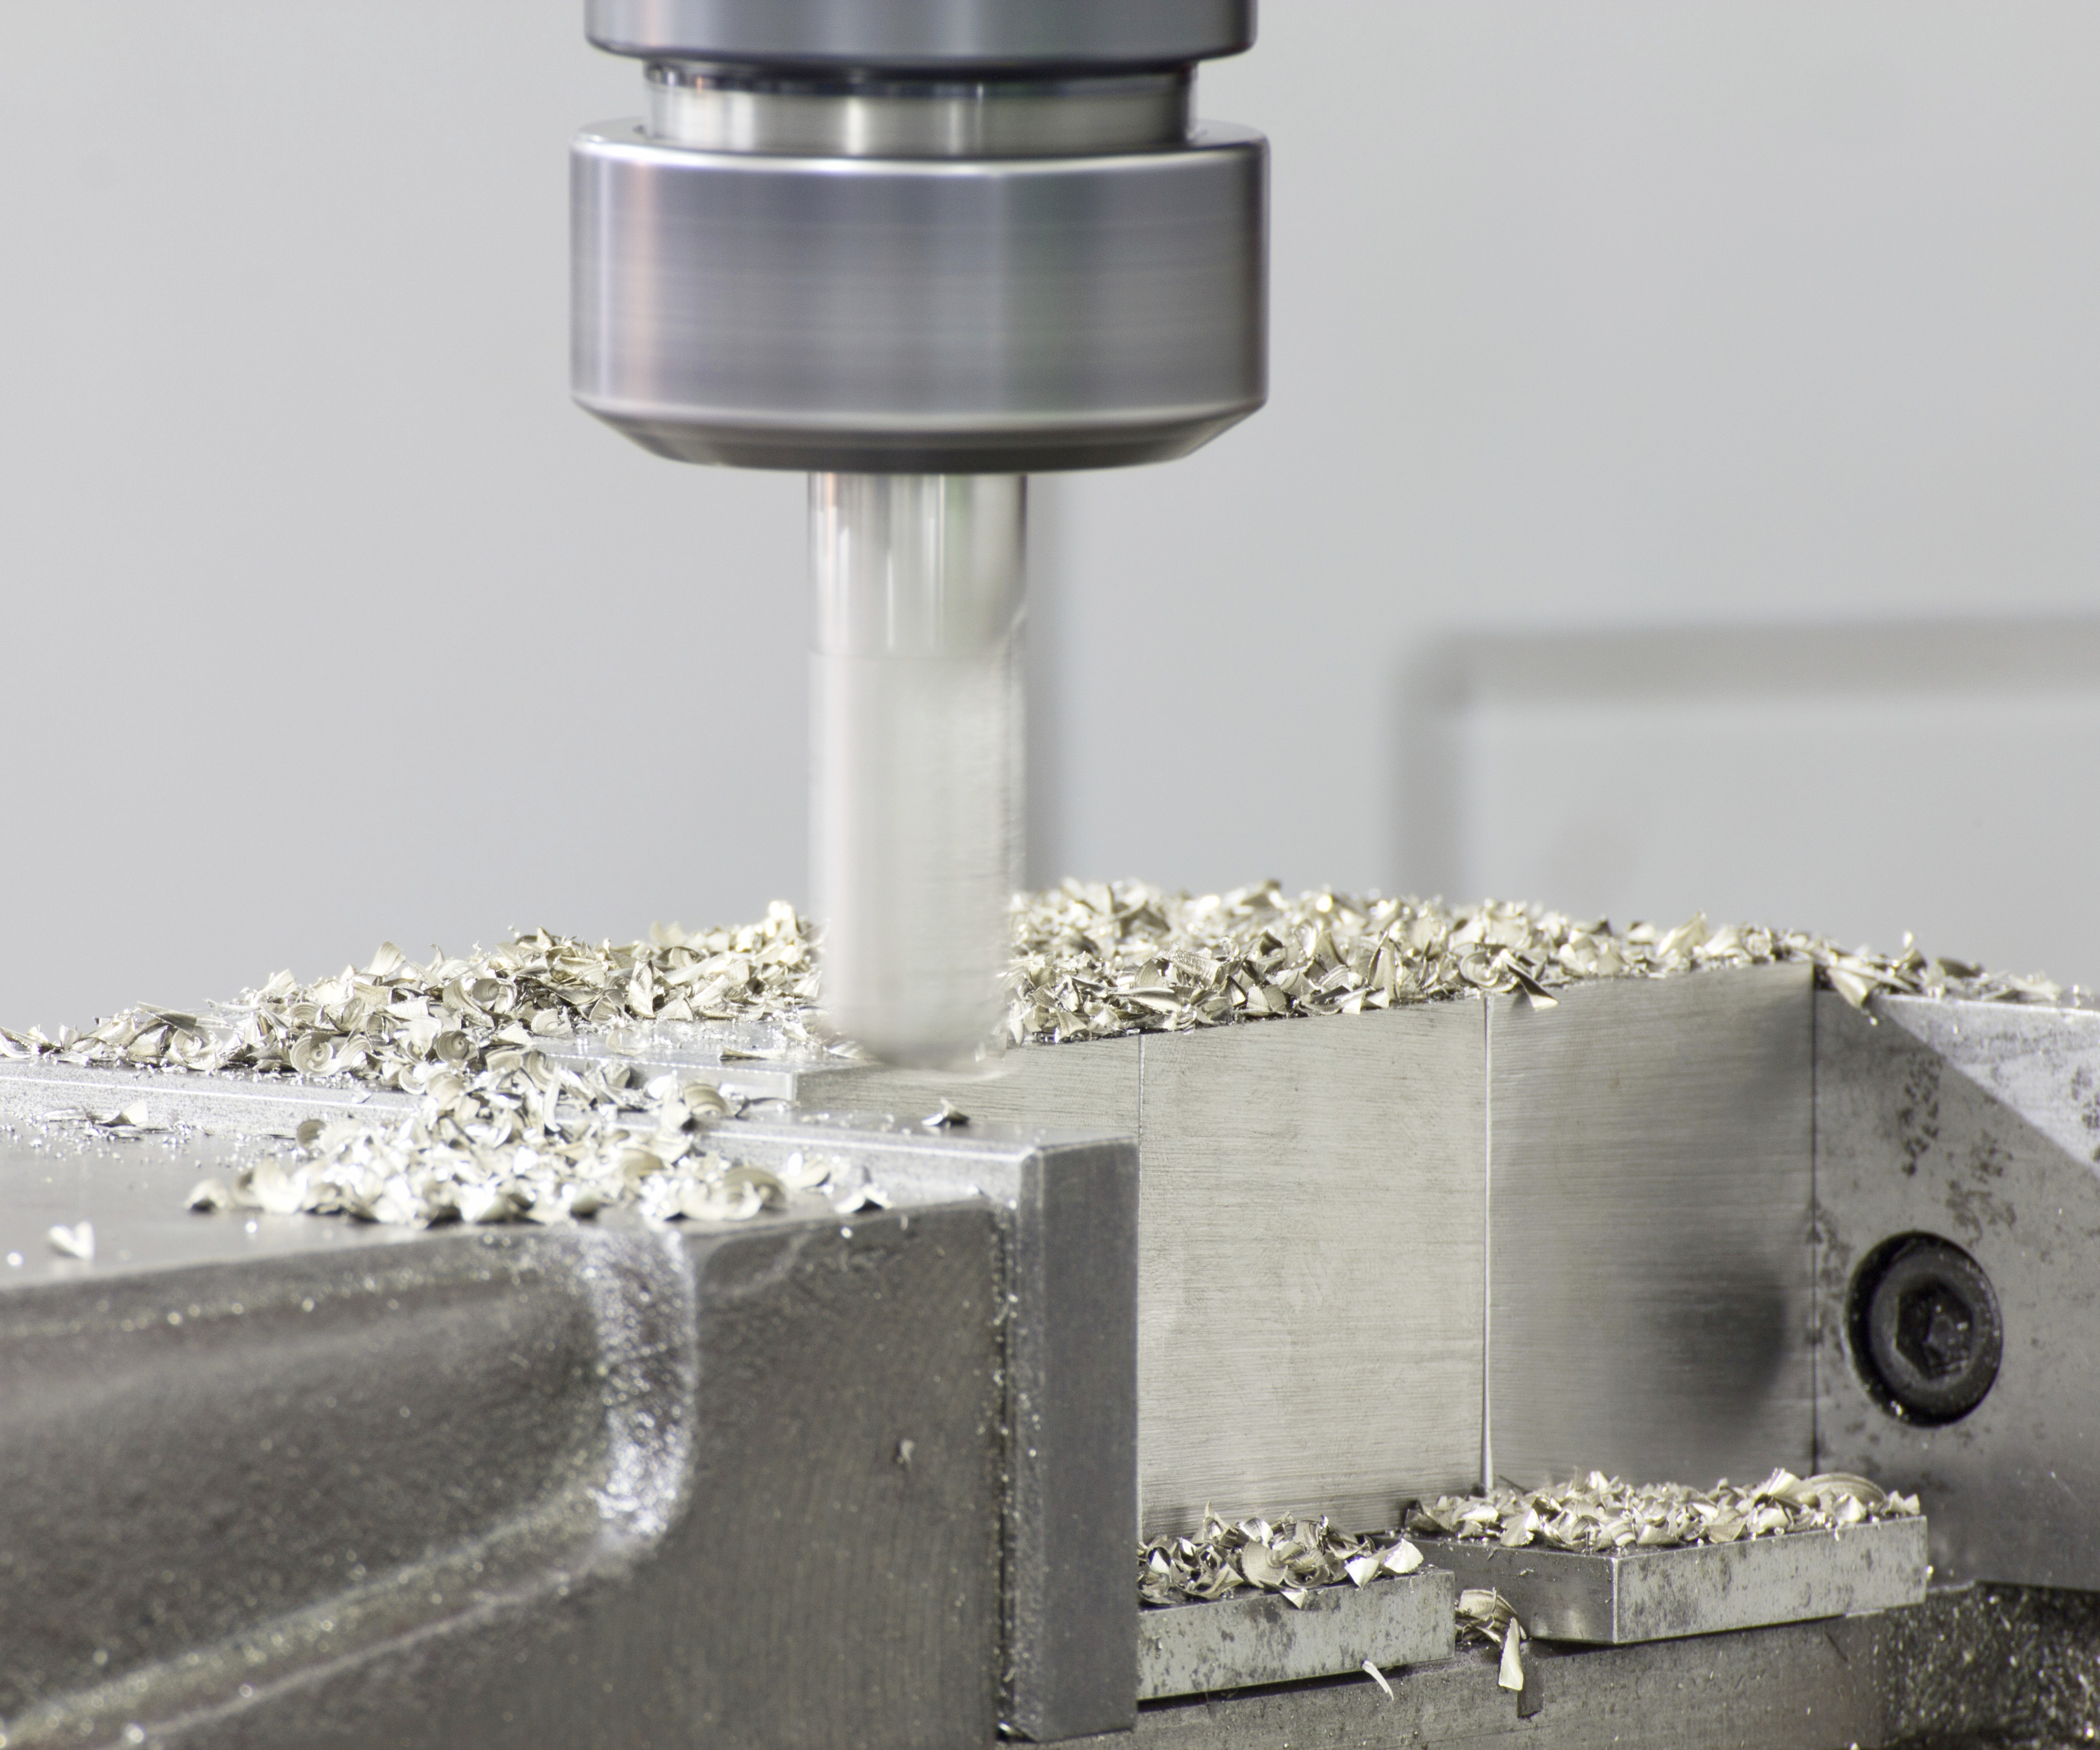 12106c98b2a2 Tool Considerations for High Speed Cutting : Modern Machine Shop